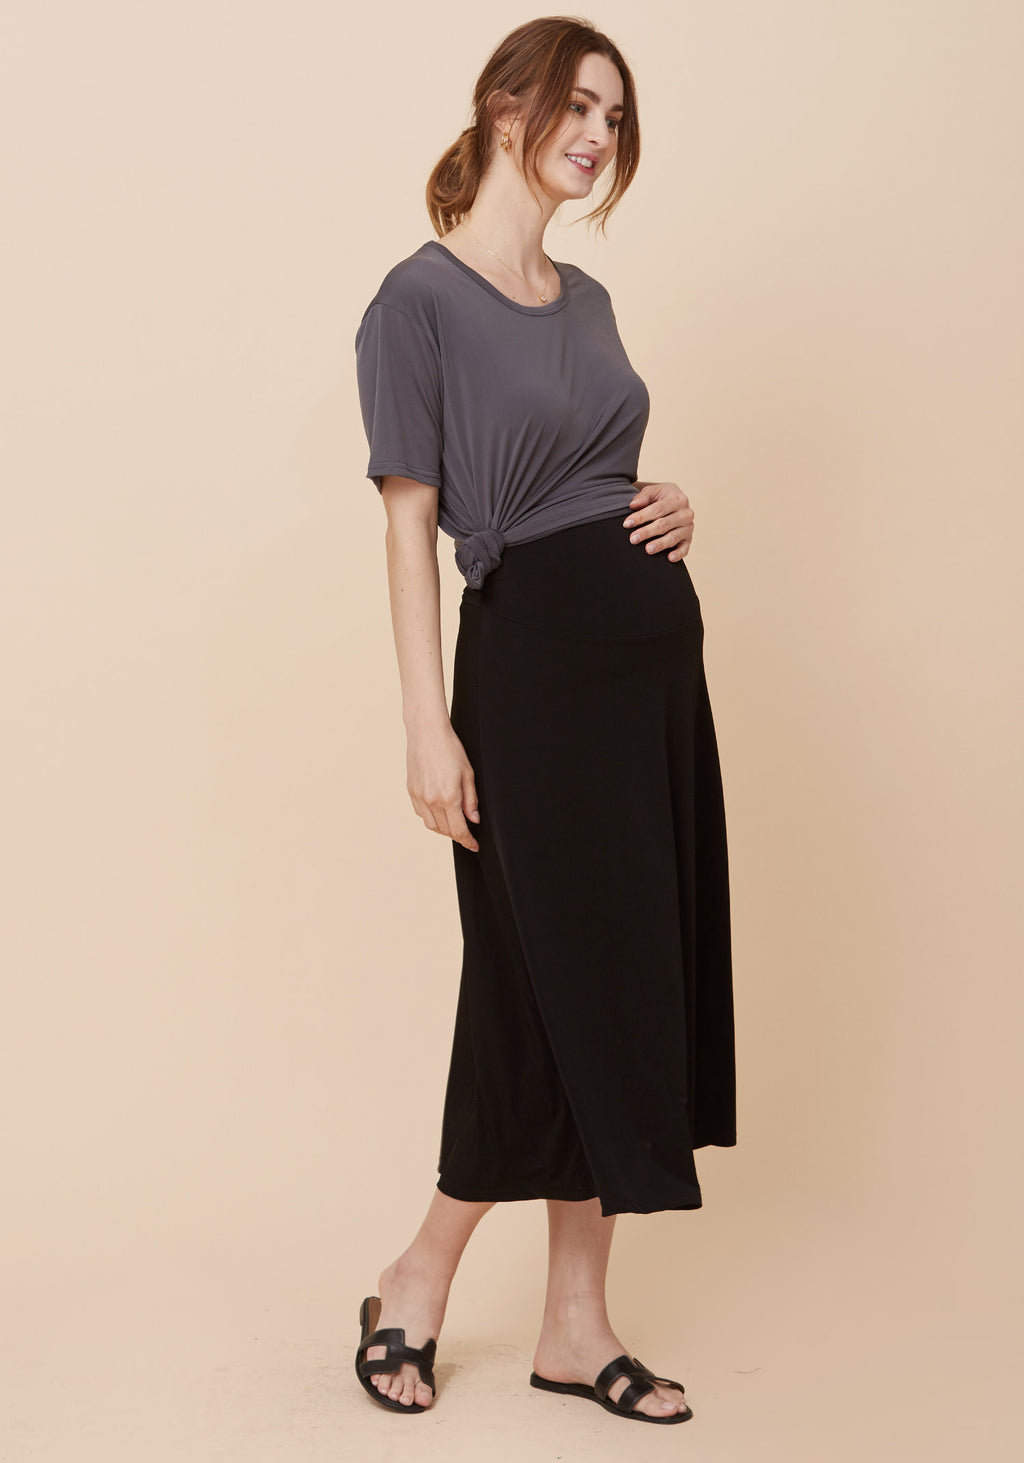 SUMMER COOLING SKIRT